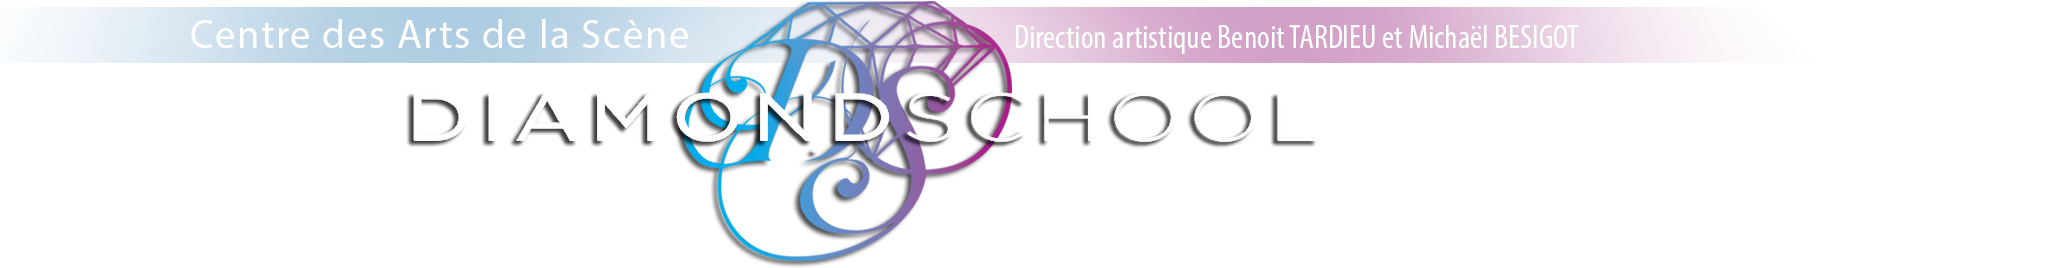 Diamond School Cannes – Ecole danse chant Cannes